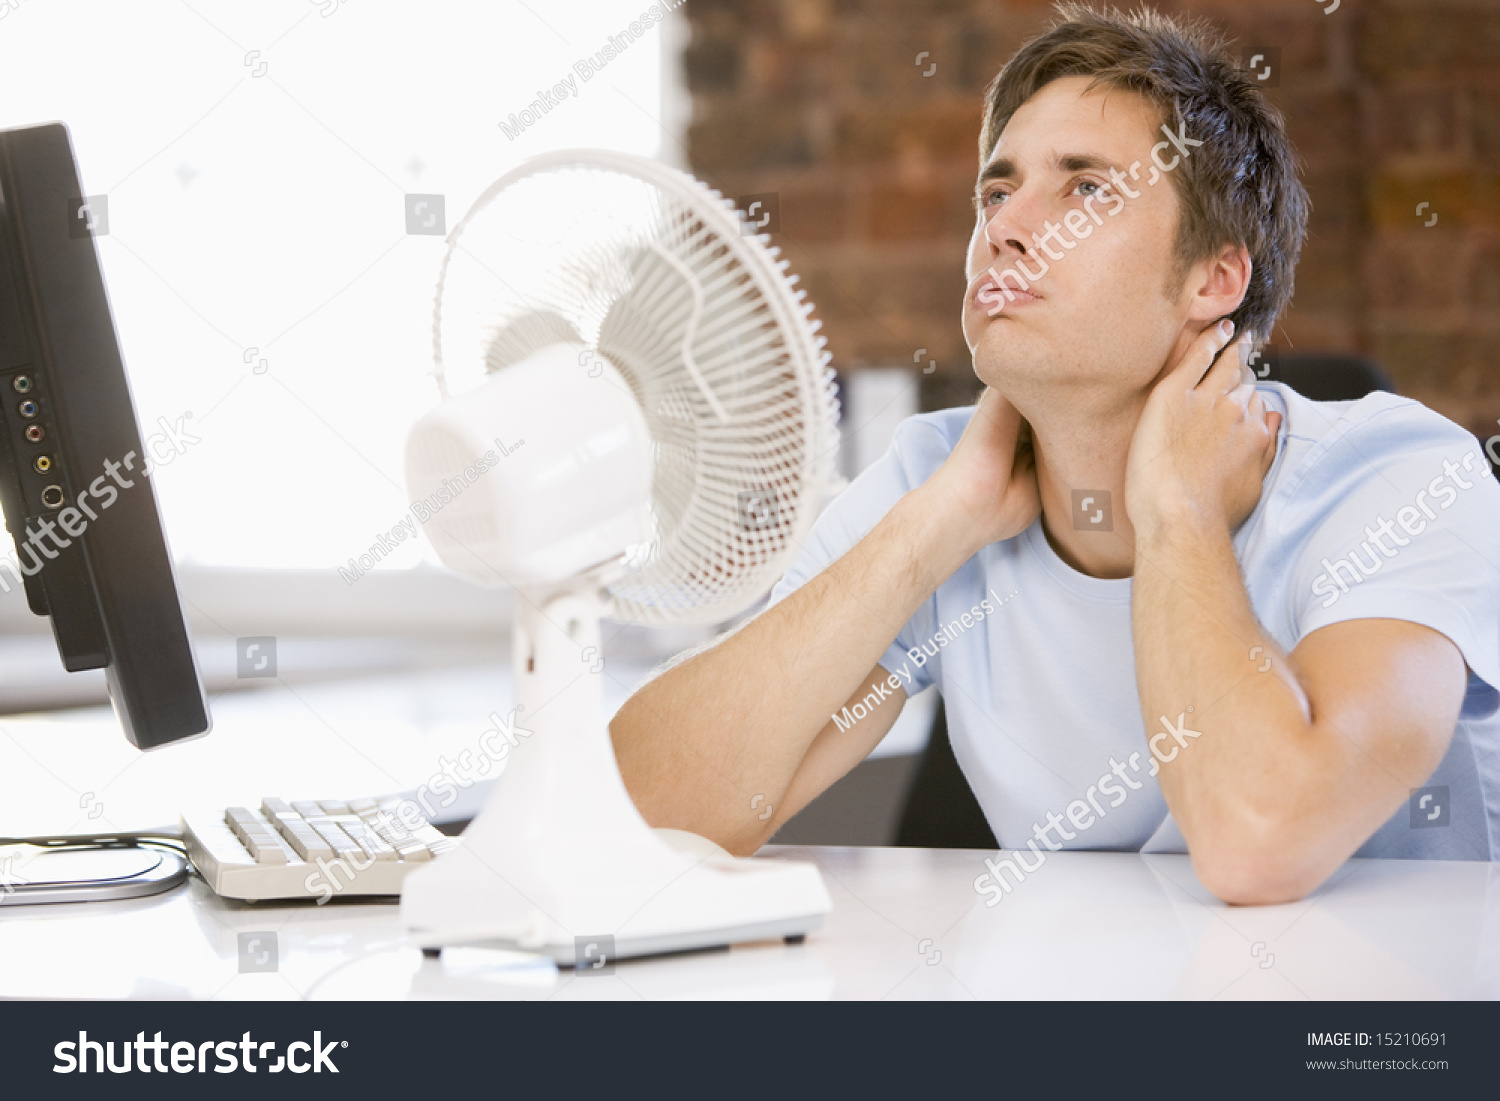 Cooling Off With Fan : Businessman in office with computer and fan cooling off